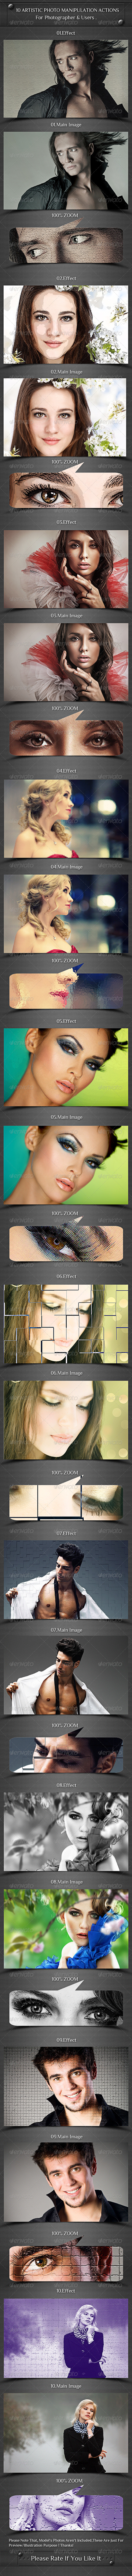 GraphicRiver 10 Artistic Photo Manipulation Actions 8186090